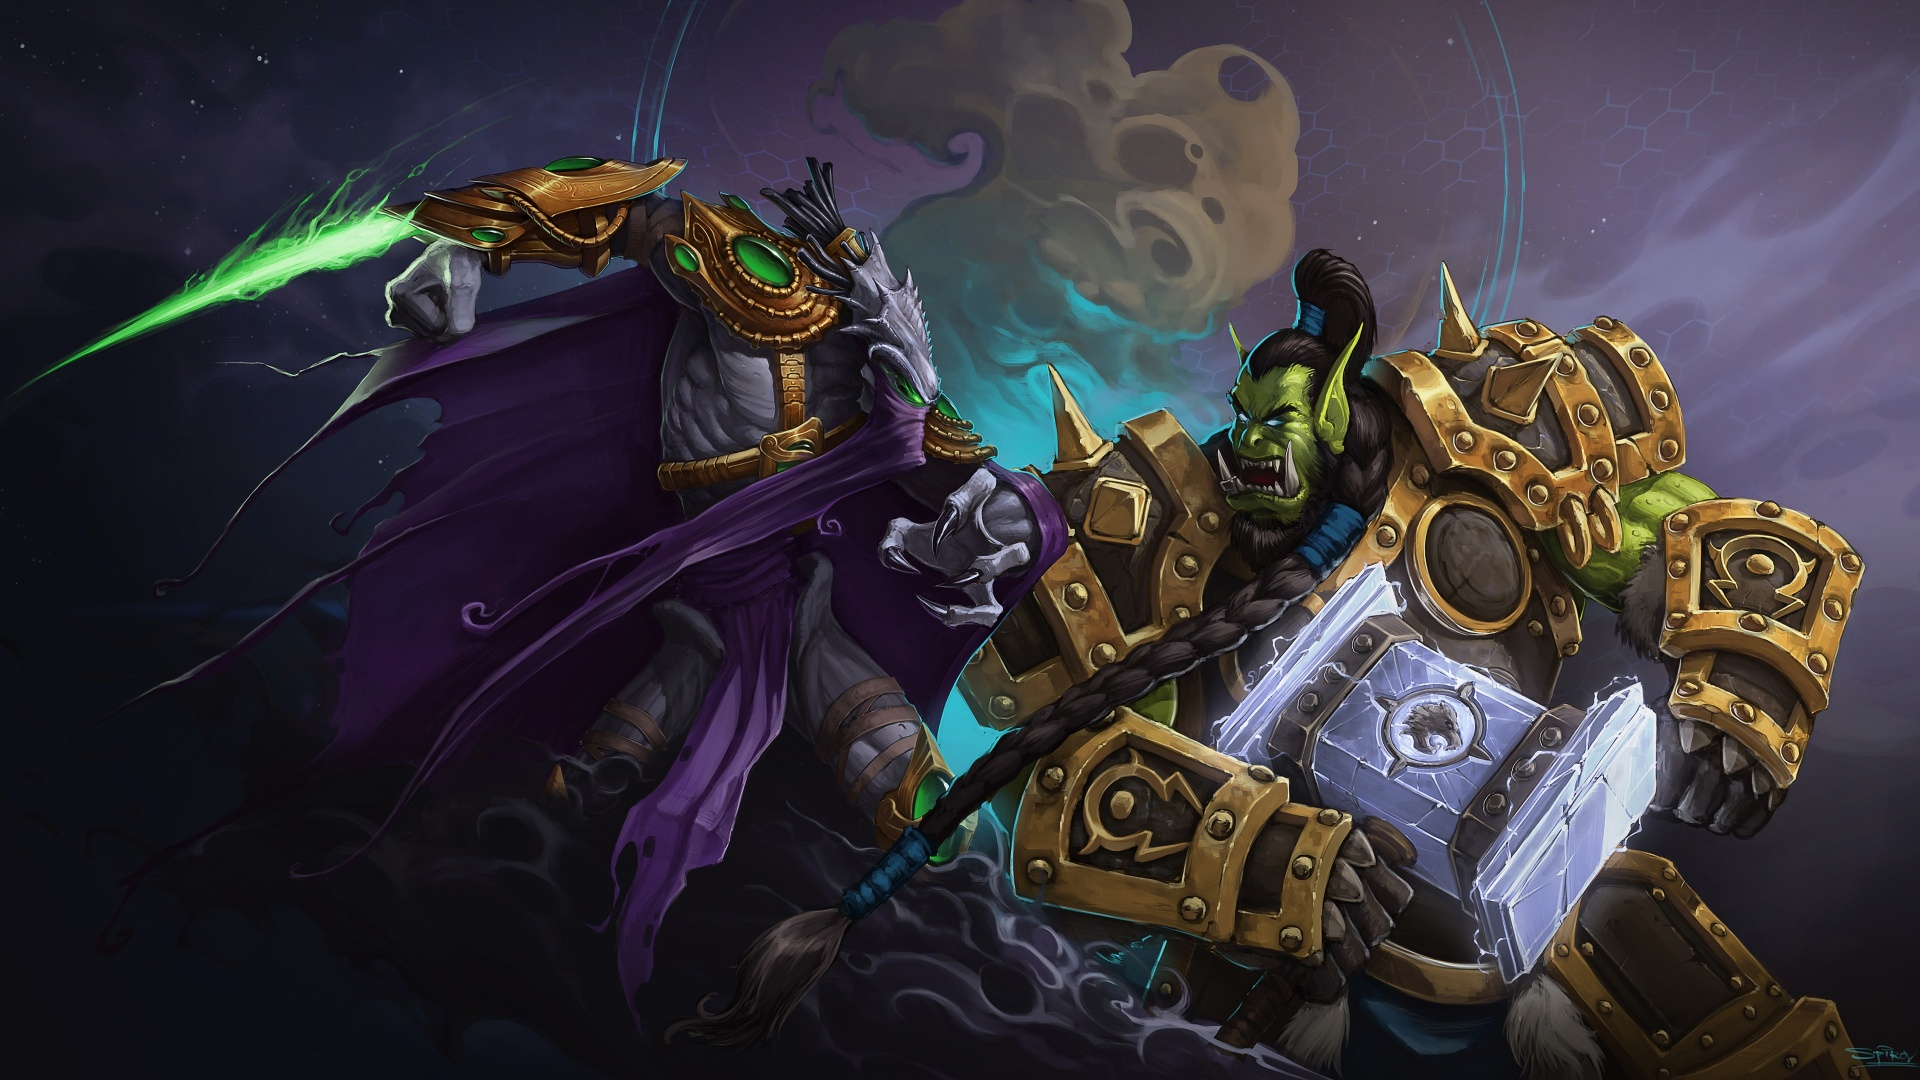 Thrall Vs Zeratul Heroes Of The Storm Wallpapers 1920x1080 567425